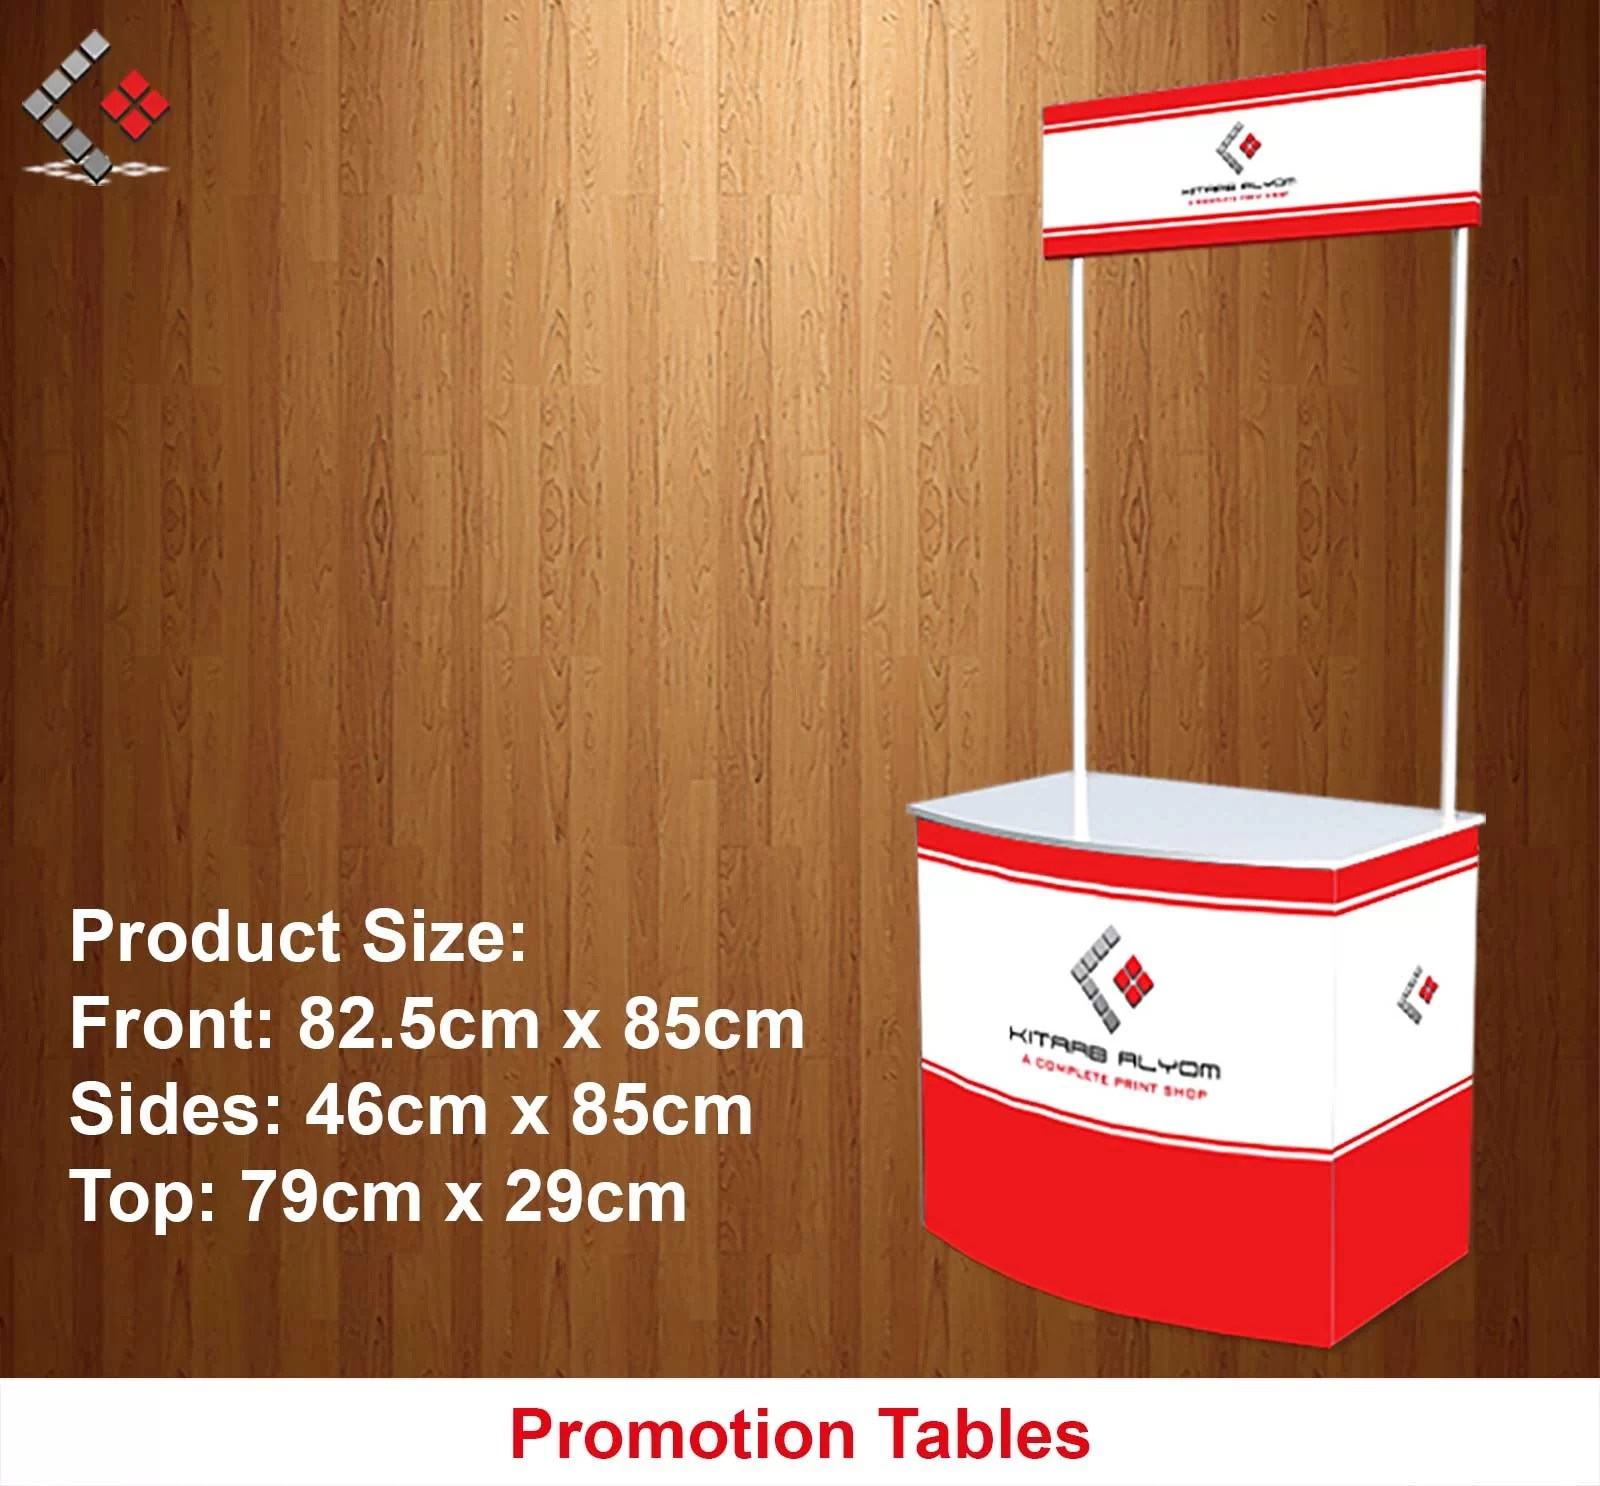 Promotional Tables in Dubai, Promotional Table Suppliers in Dubai - UAE